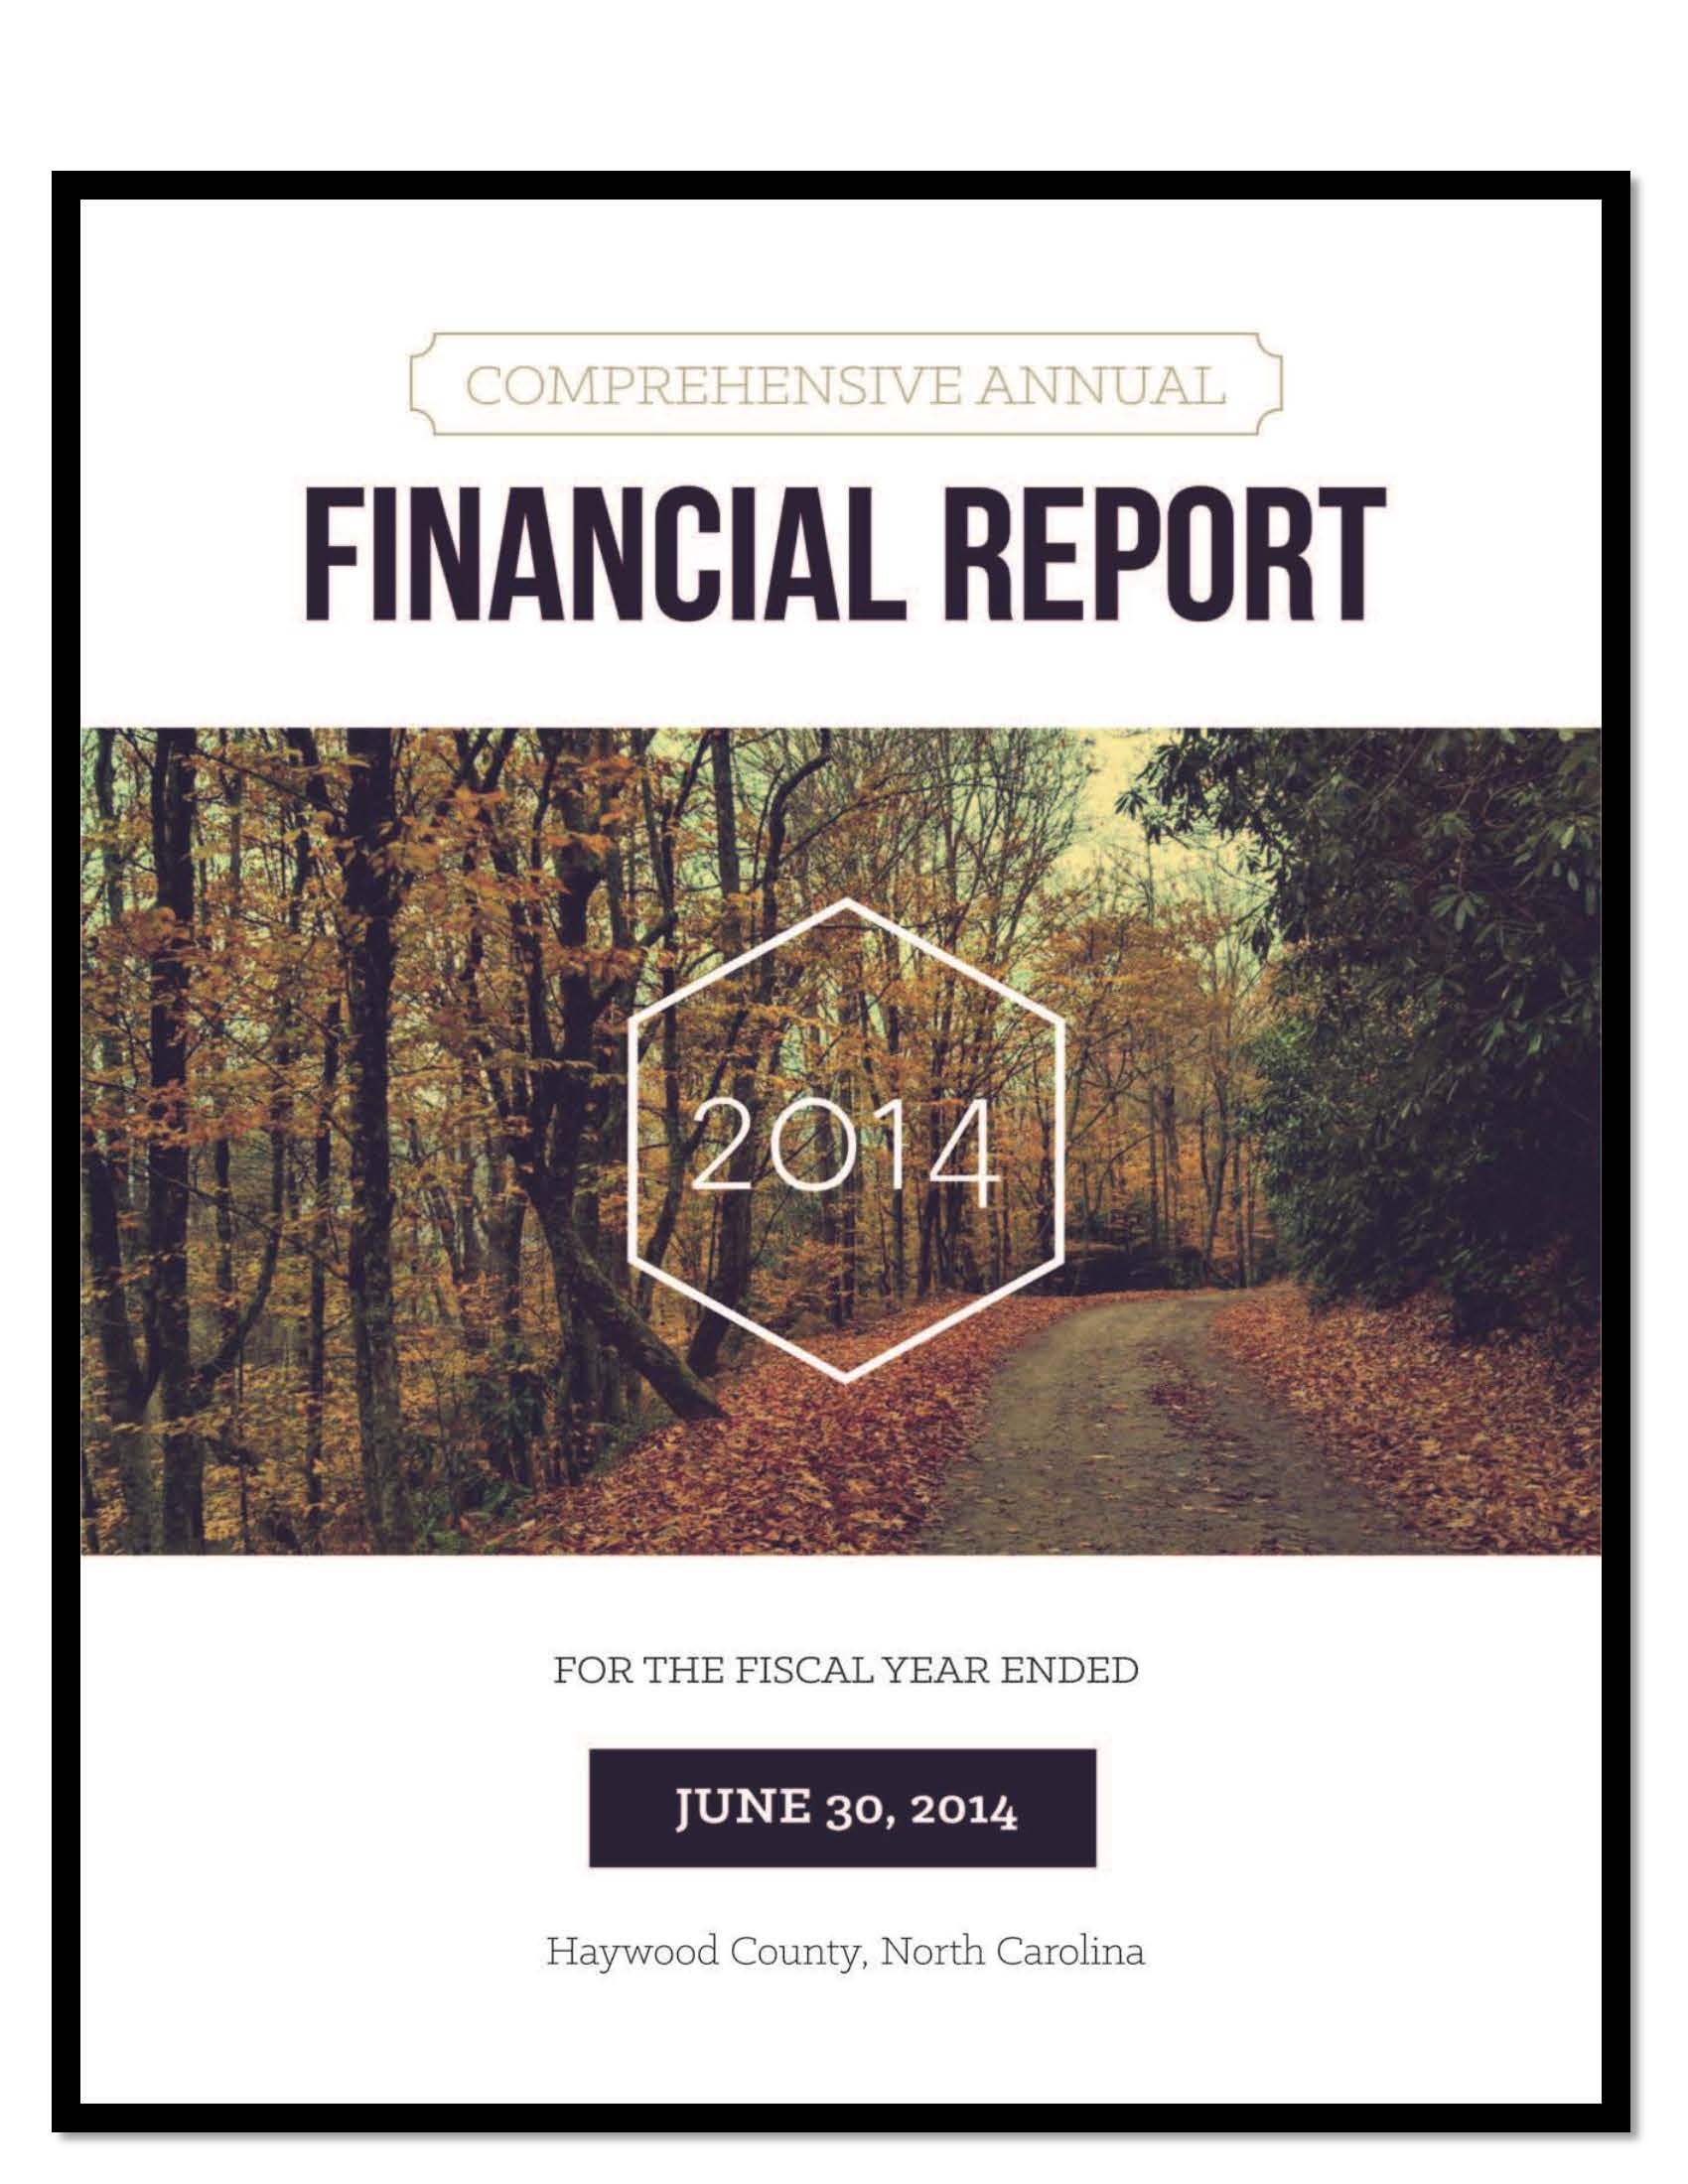 Comprehensive Annual Financial Report 2014 Cover Opens in new window